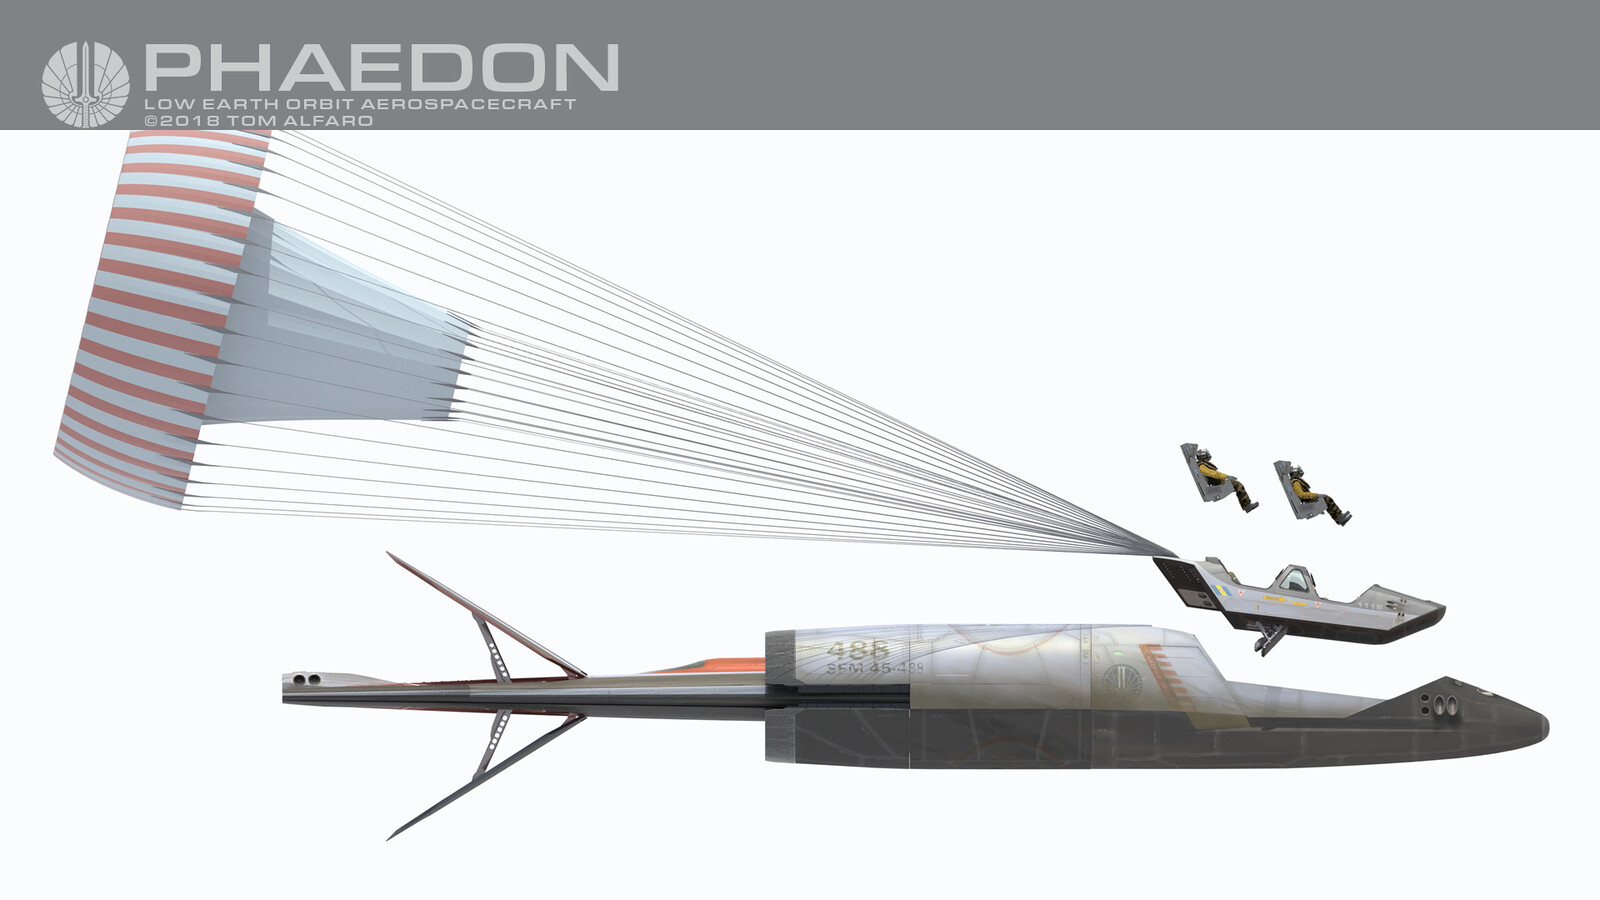 If the main fuselage in compromised during any phase of flight, the crew escape module can detach from the main vessel and attempt a safe return to earth.